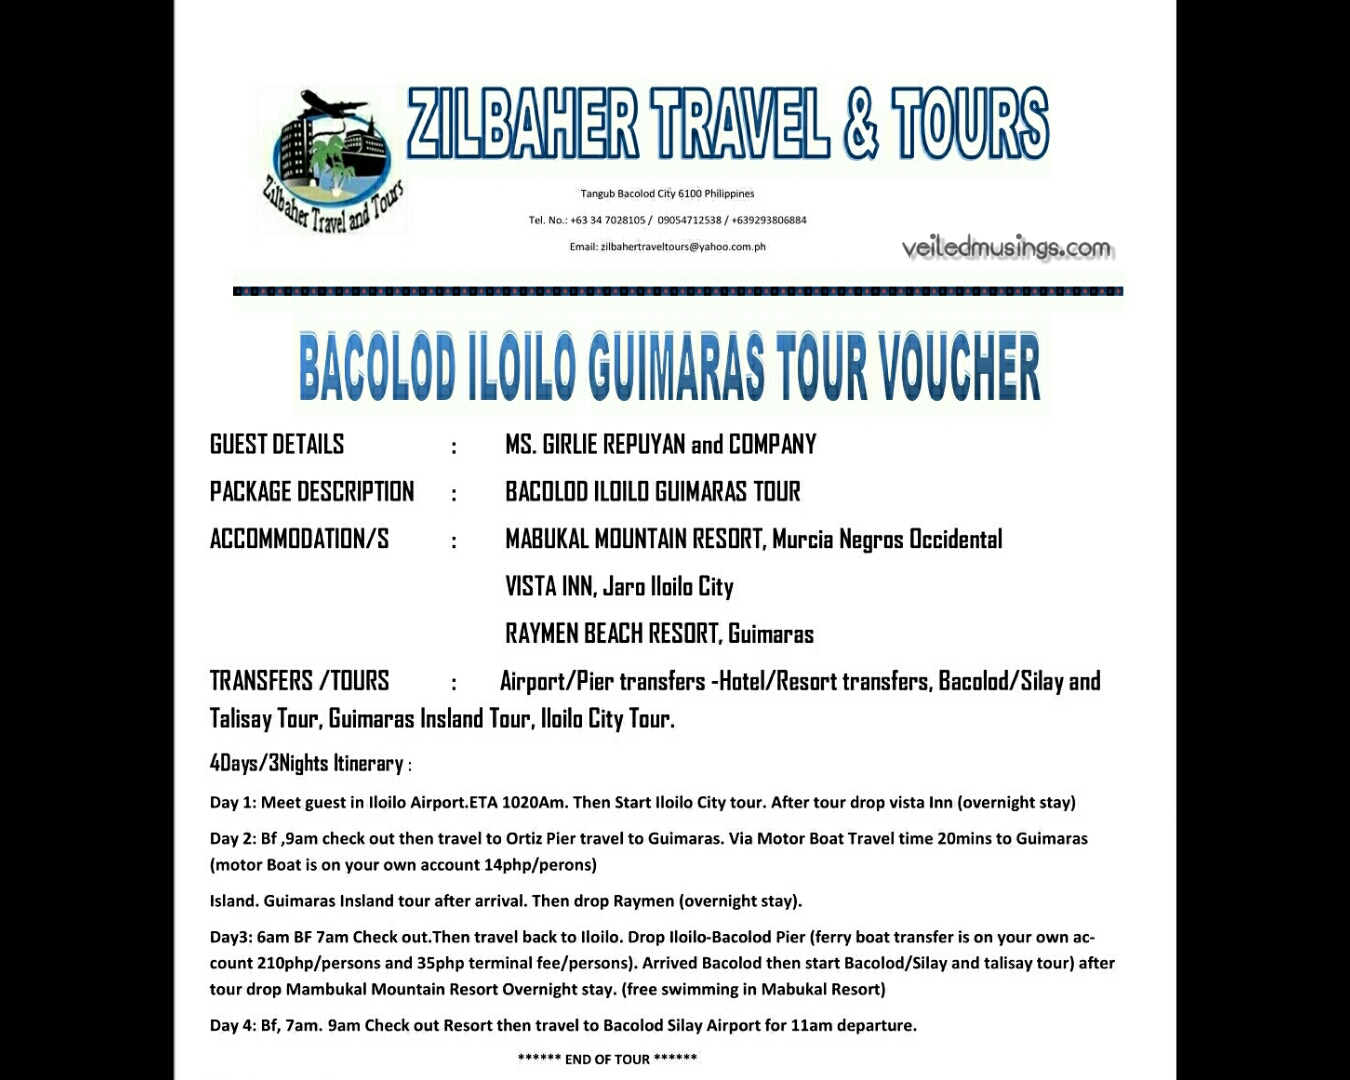 Zilbaher On The Go Tours Bacolod Iloilo Guimaras 2016 Itinerary